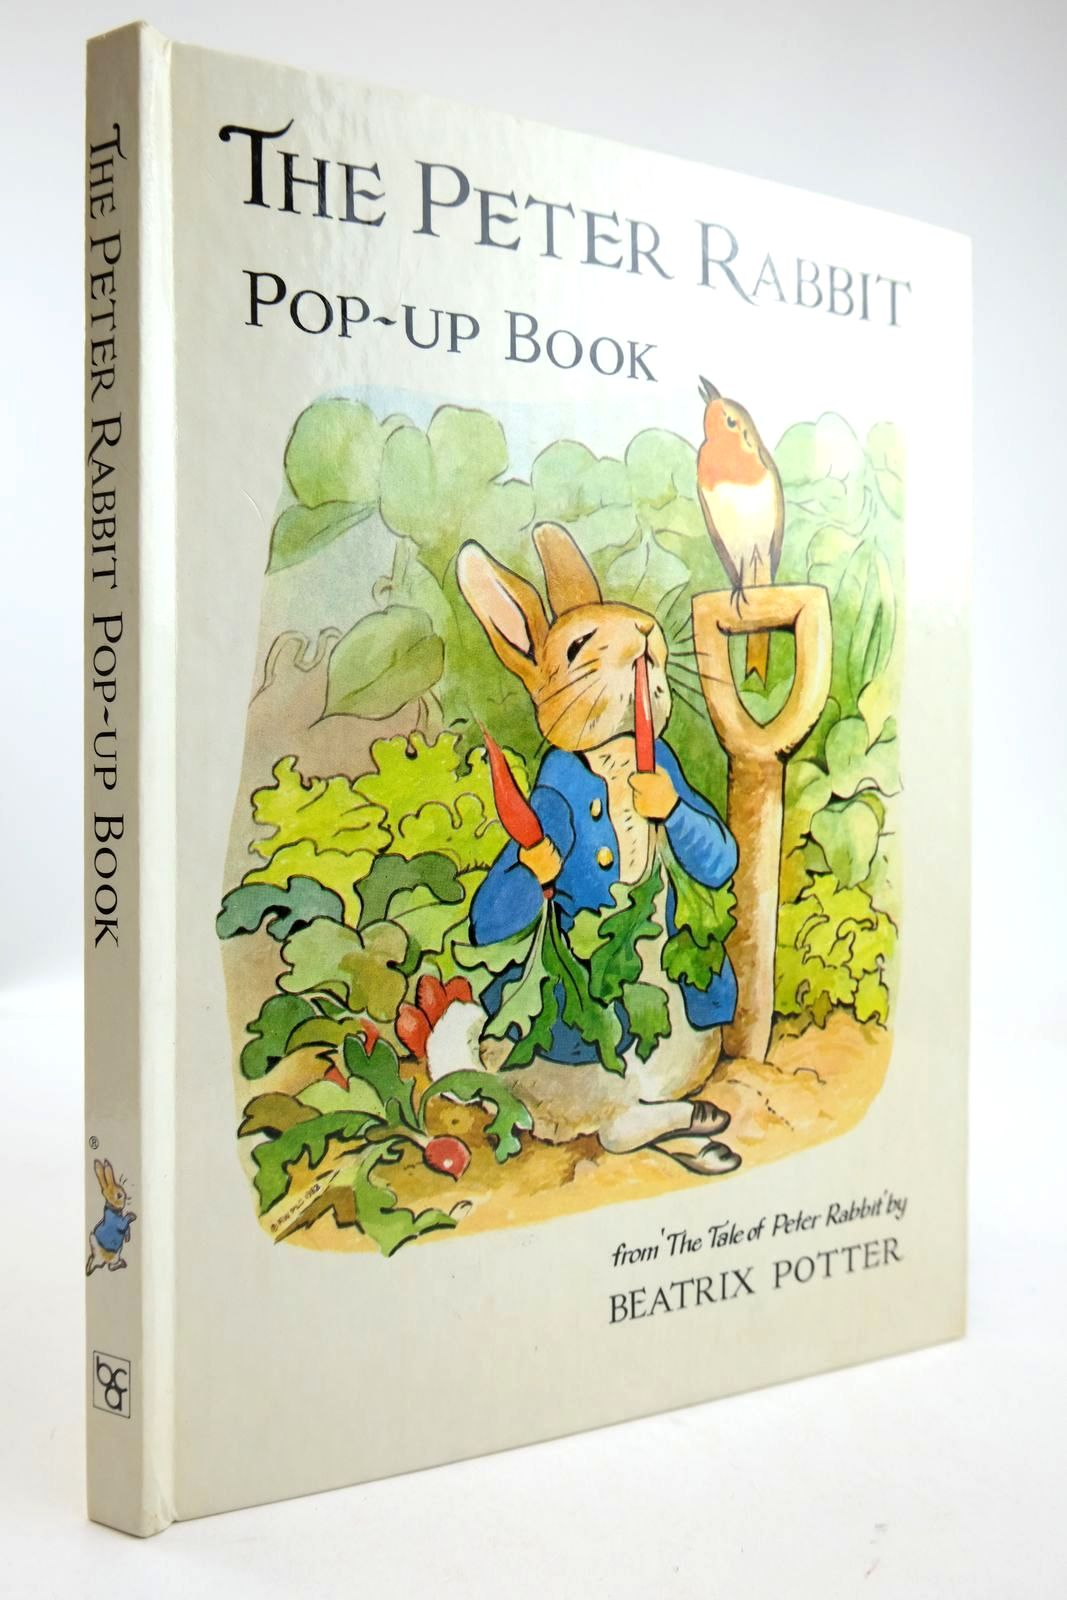 Photo of THE PETER RABBIT POP-UP BOOK written by Potter, Beatrix illustrated by Potter, Beatrix Twinn, Colin published by Book Club Associates (STOCK CODE: 2132950)  for sale by Stella & Rose's Books